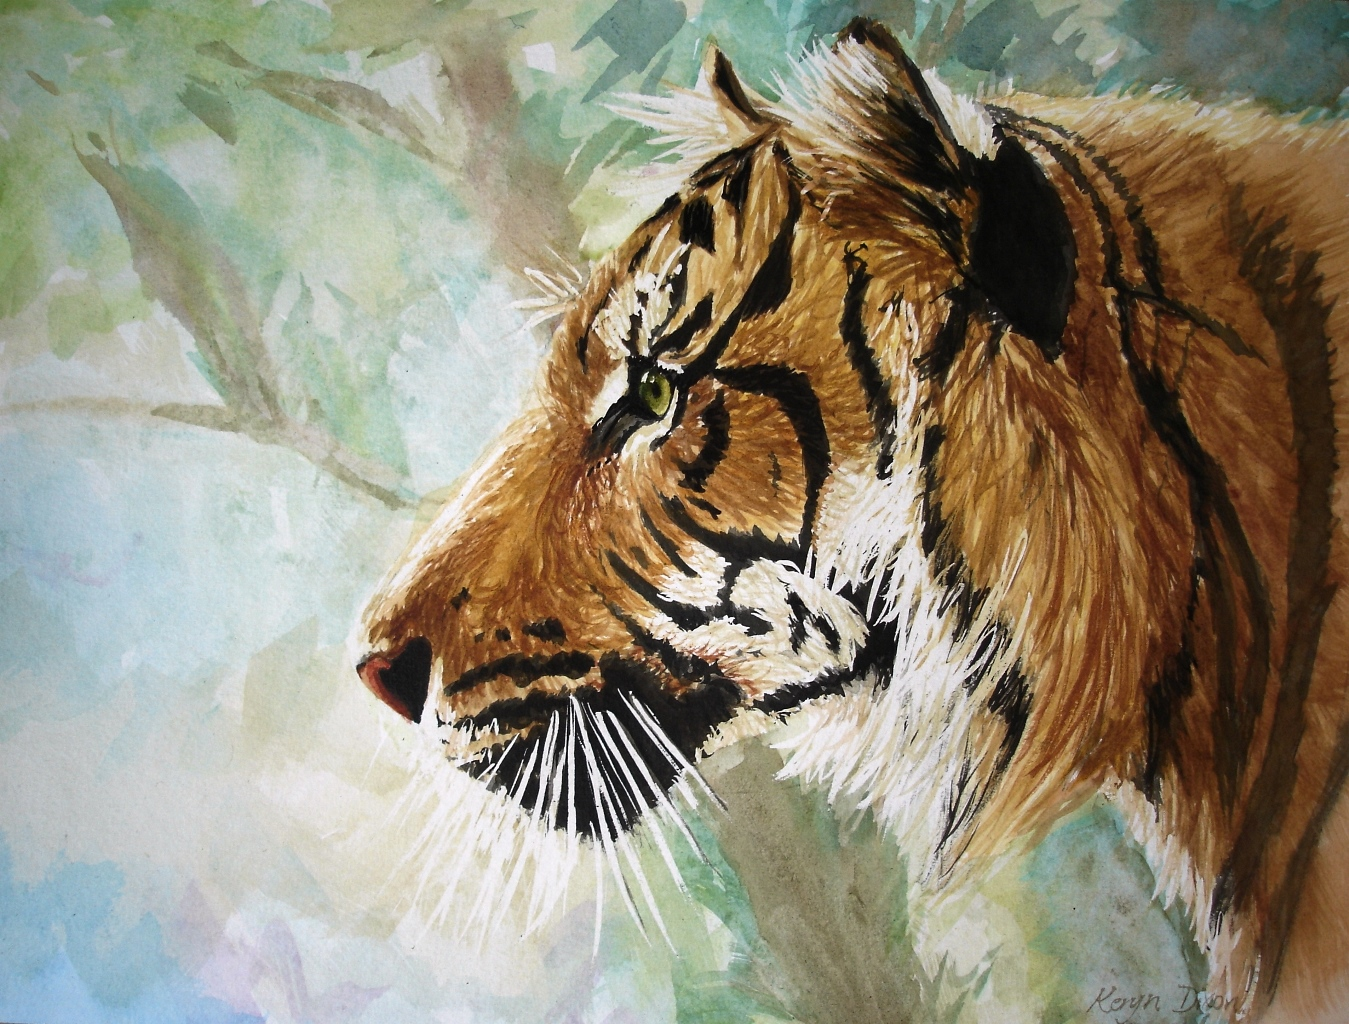 Tiger profile Watercolour. Original sold, prints available